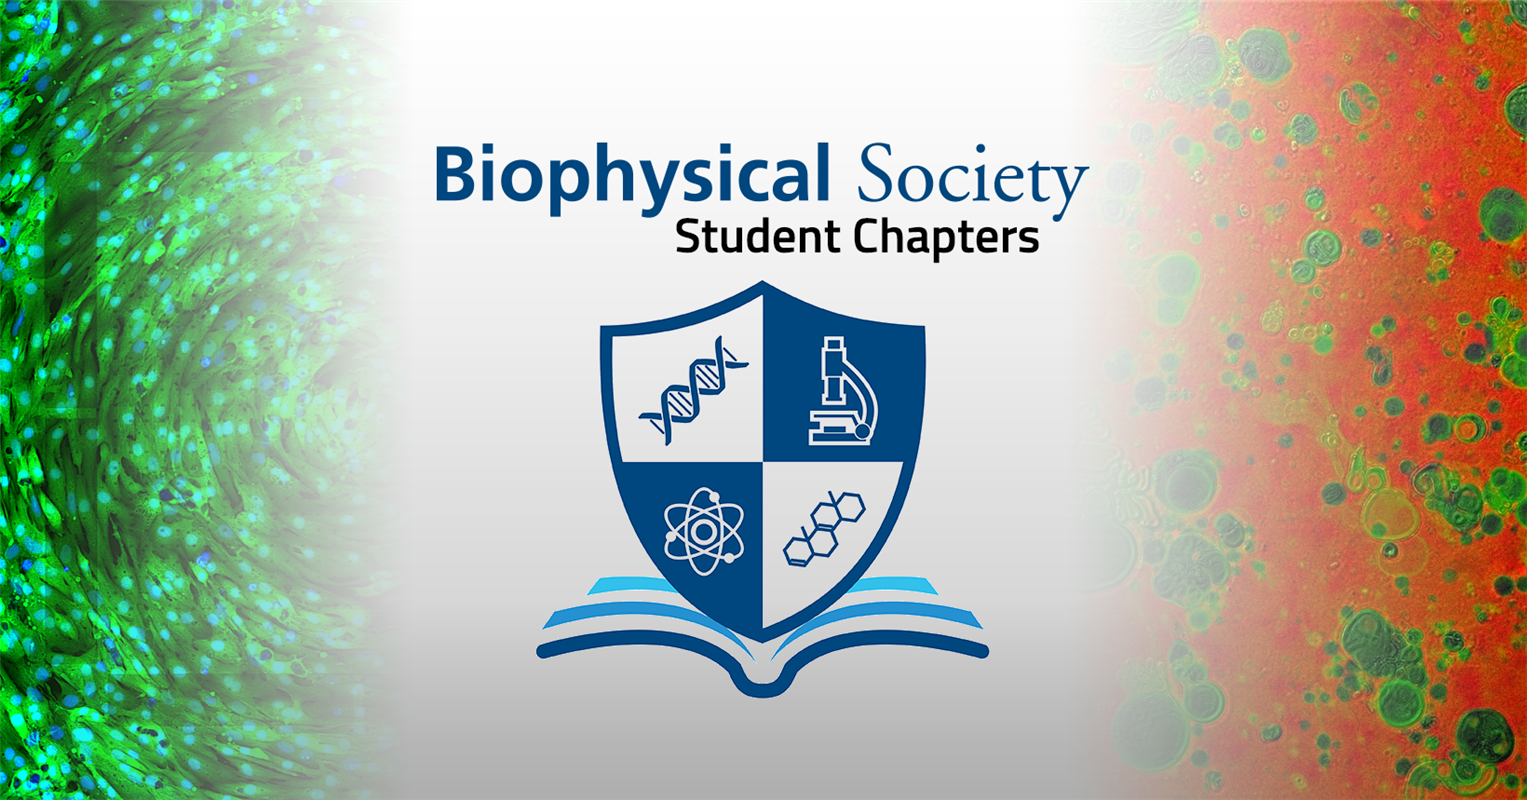 Uml Calendar Spring 2022.Bps Is Proud To Announce Four New Student Chapters